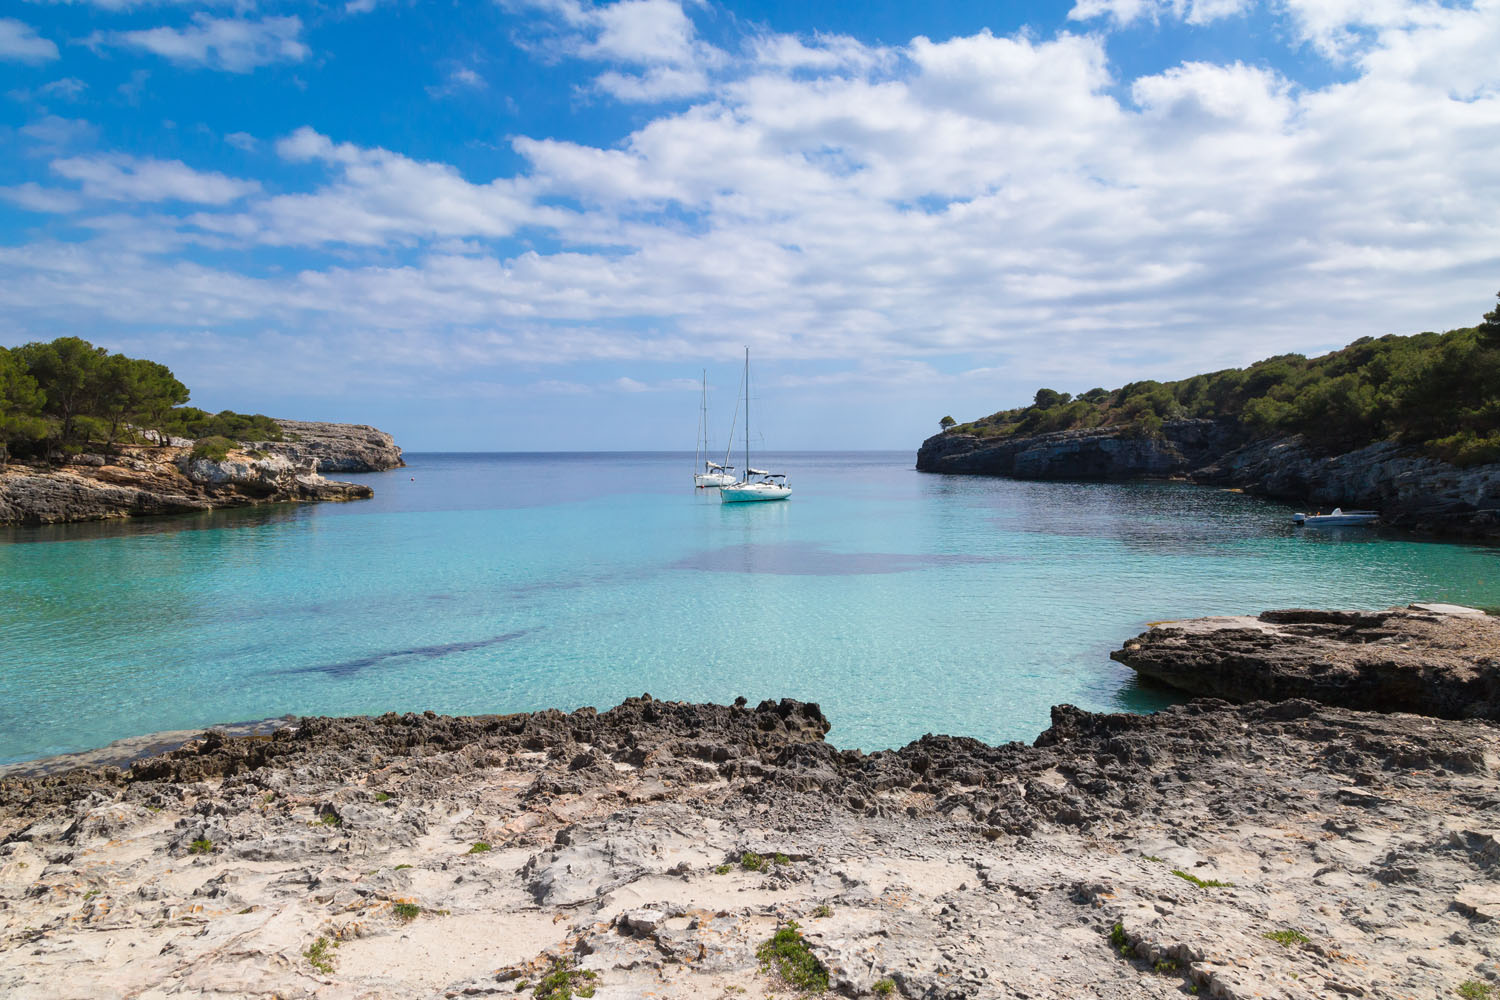 Menorca beach, Spain